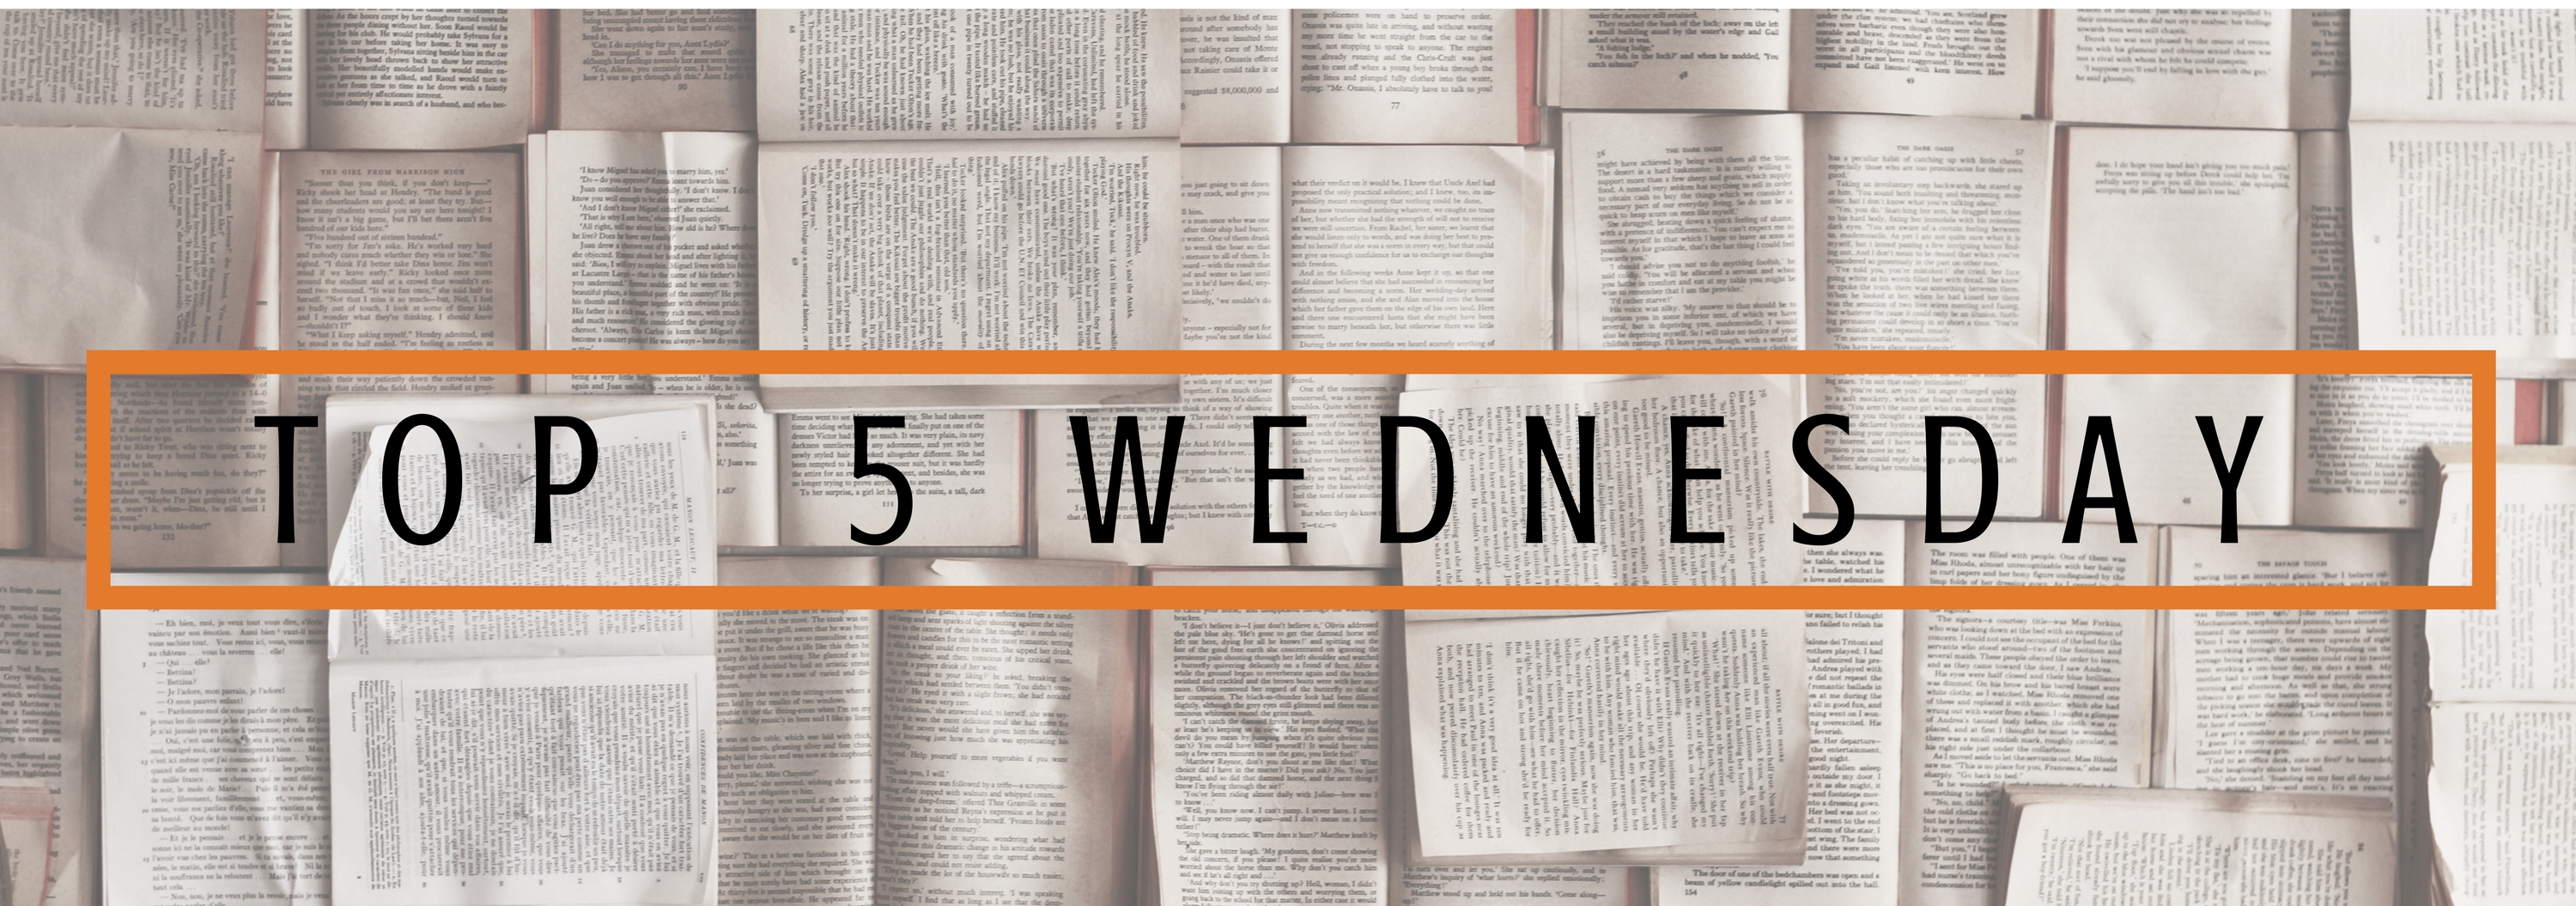 Top 5 Wednesday | Nostalgic Book Boyfriends/Girlfriends